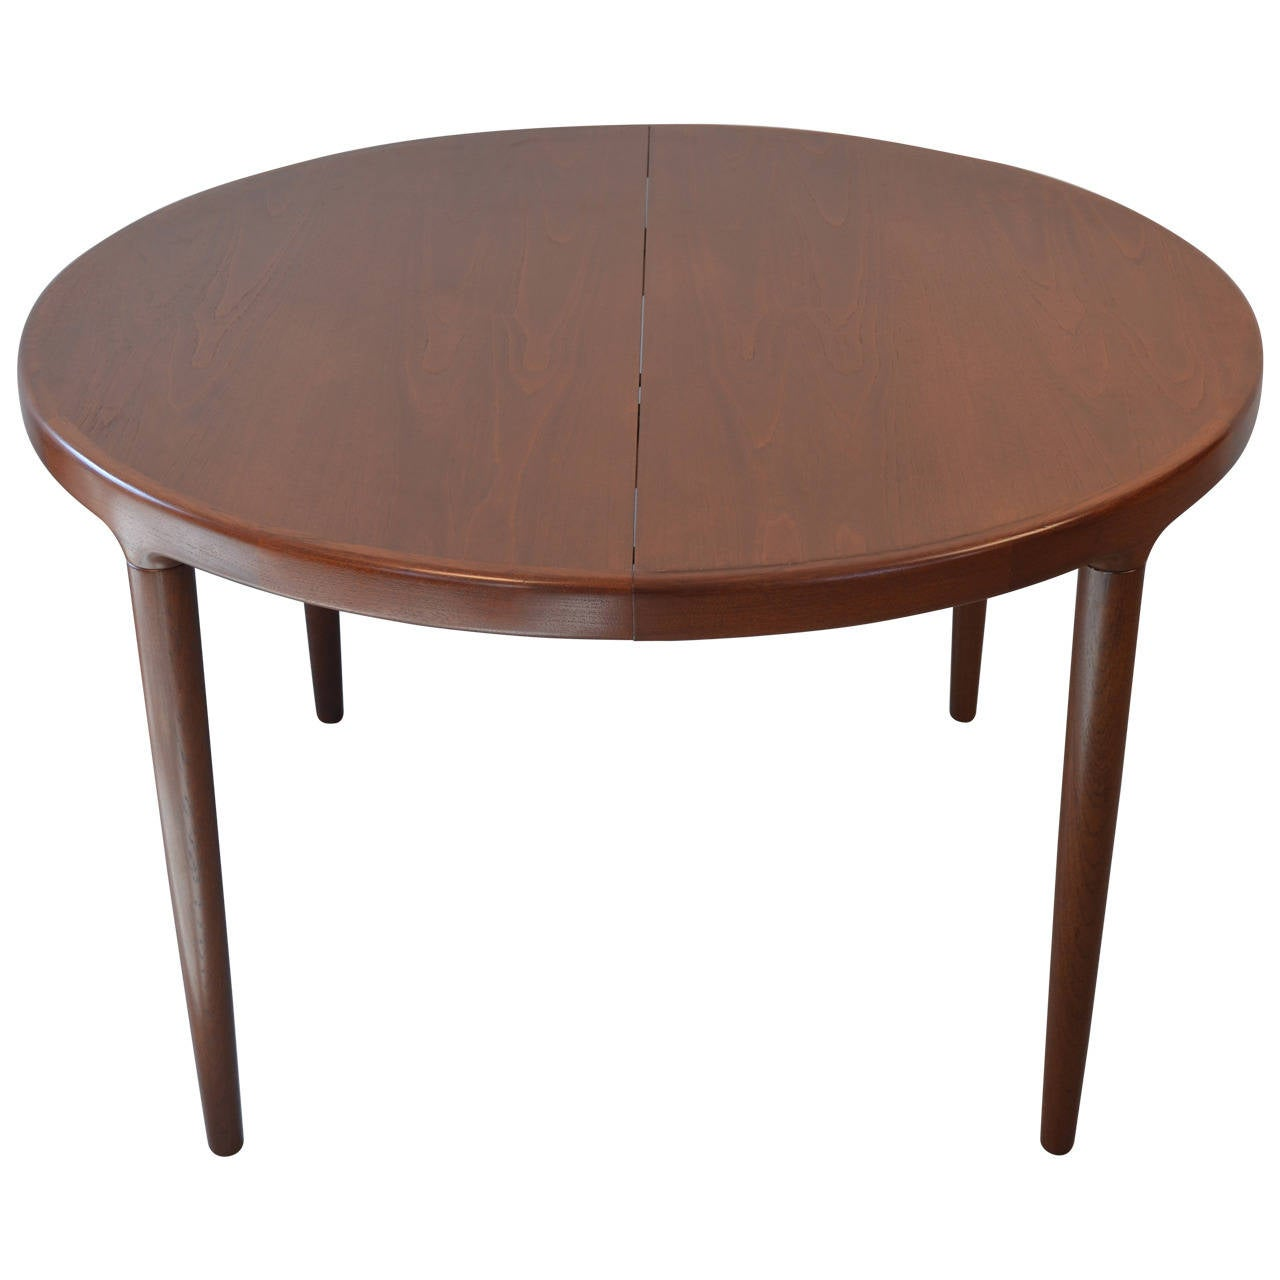 Round Dining Table With Two Leaves For Sale At 1stdibs